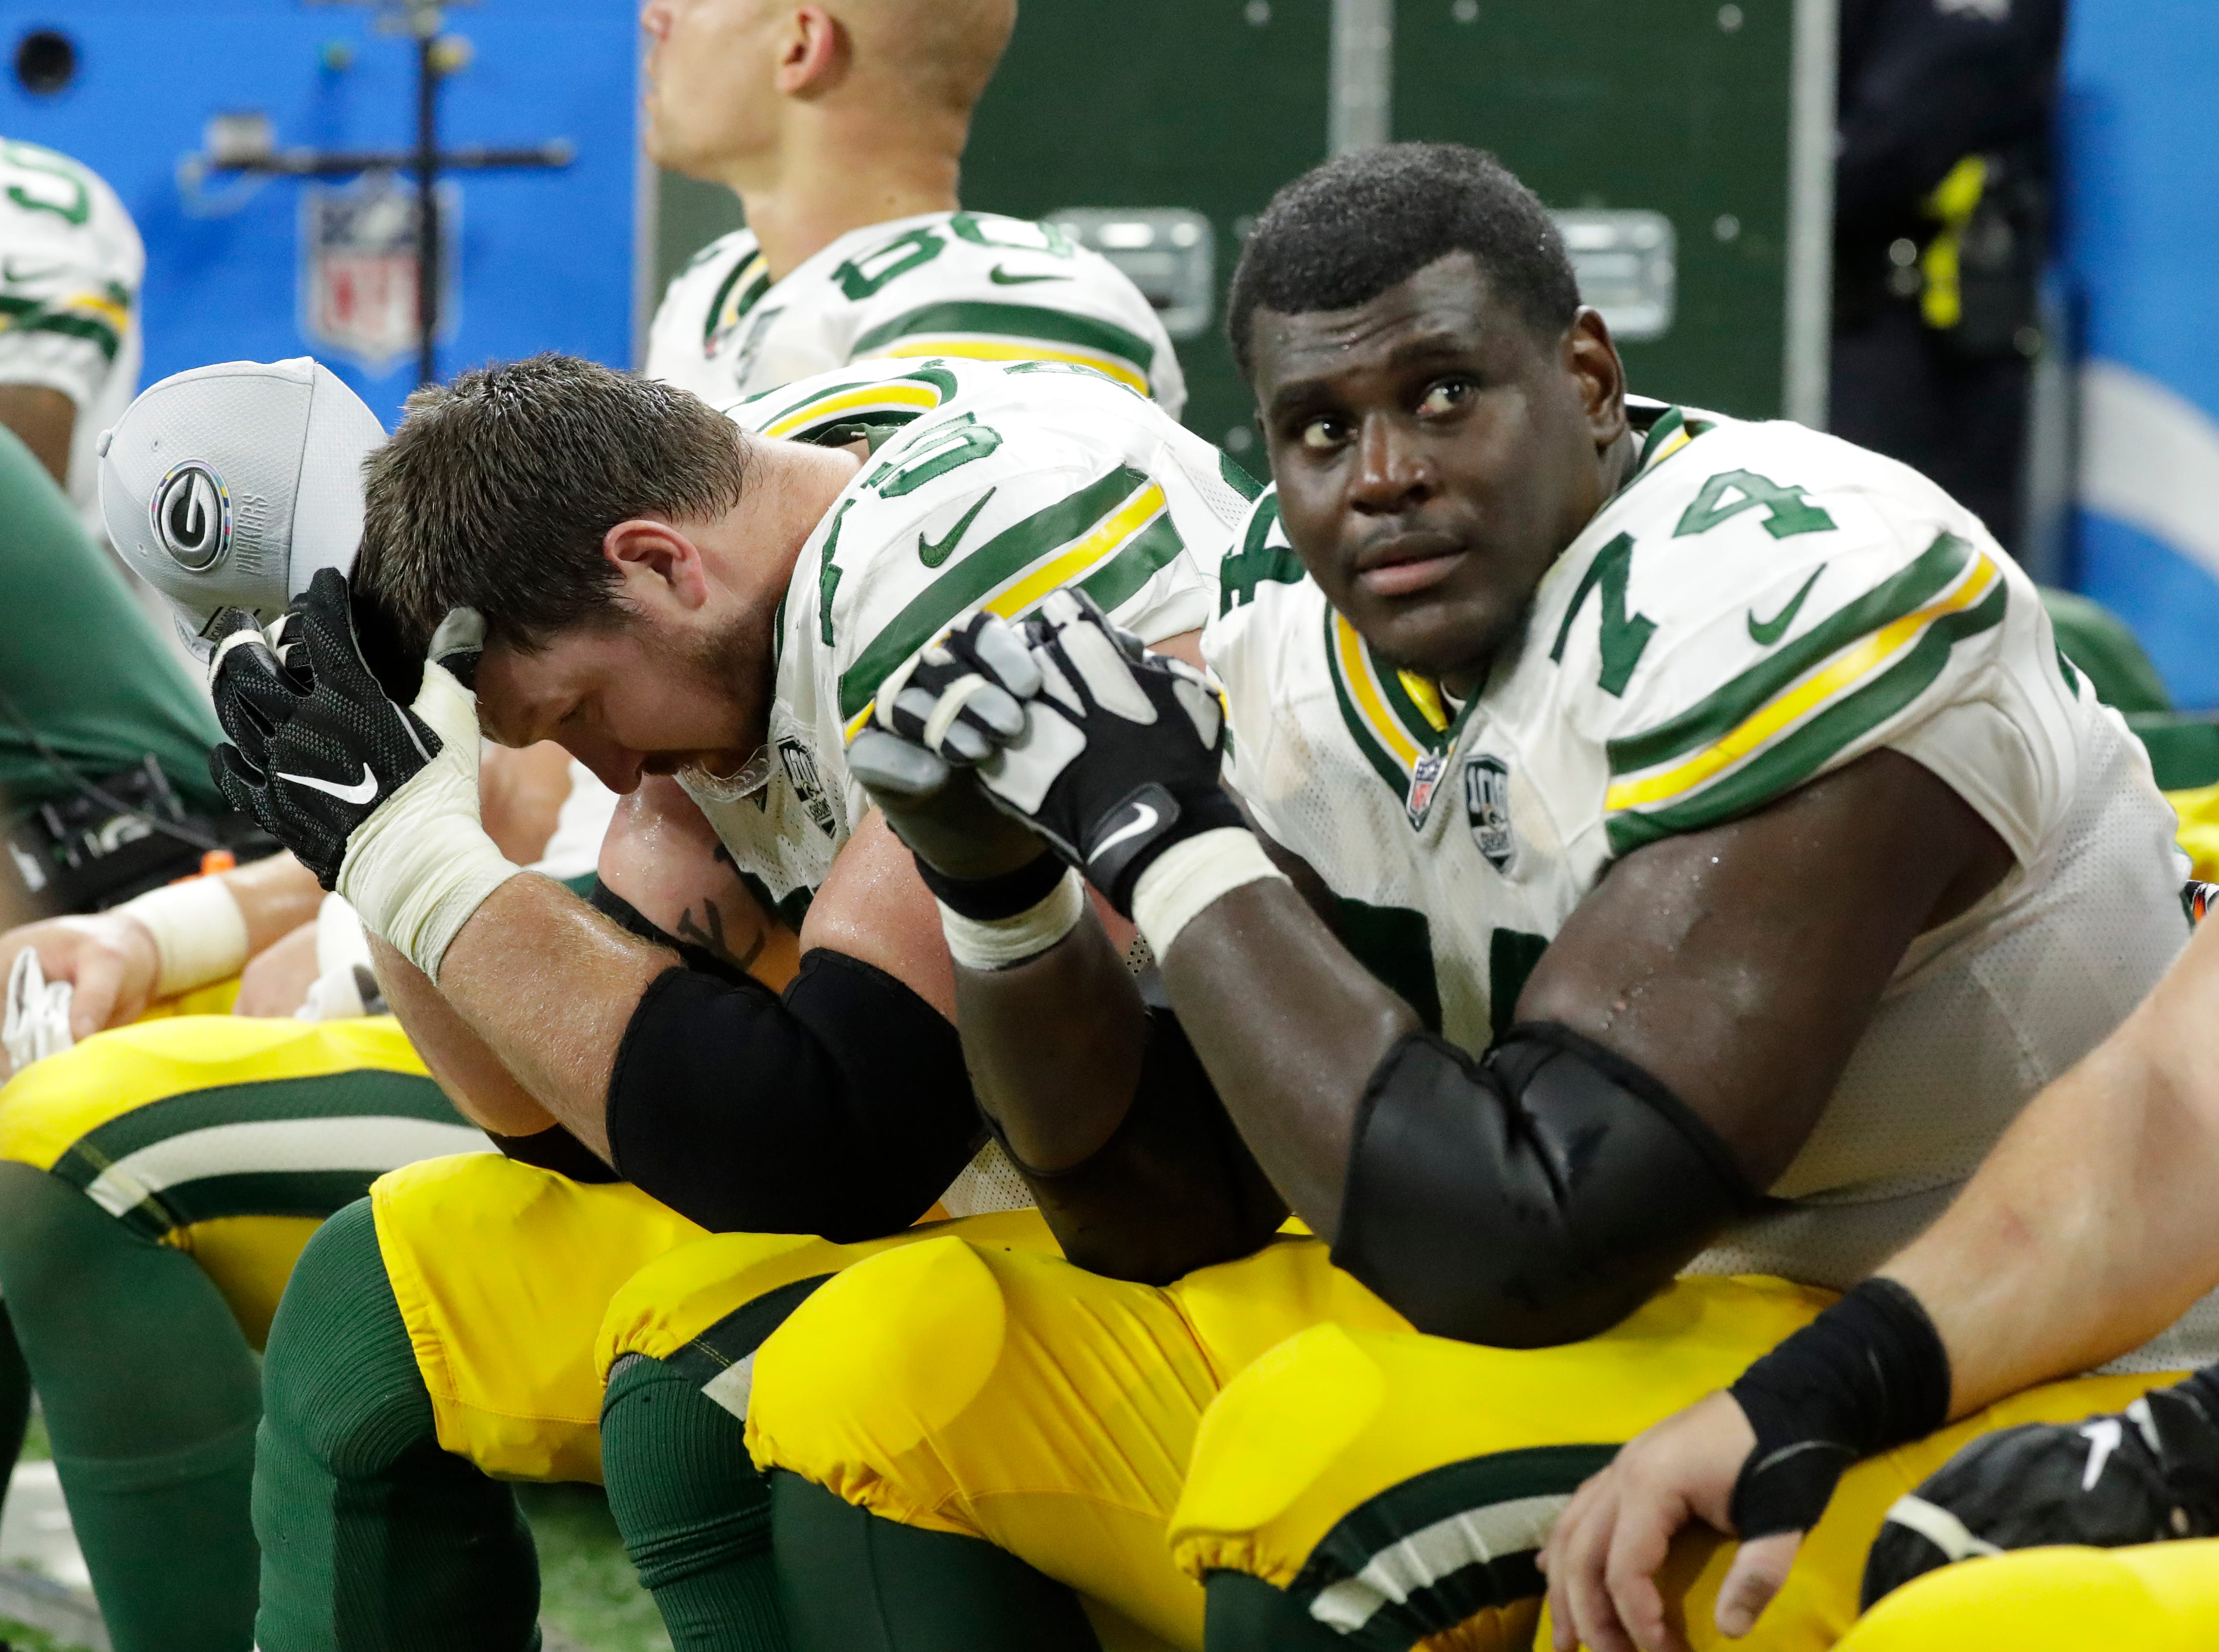 Green Bay Packers offensive tackle Bryan Bulaga (75) and Green Bay Packers offensive tackle Byron Bell (74) rest at the end of the game during the Green Bay Packers 31-23 loss to the Detroit Lions at Ford Field, Detroit, Sunday, October 7, 2018.   Rick Wood/Milwaukee Journal Sentinel. USA